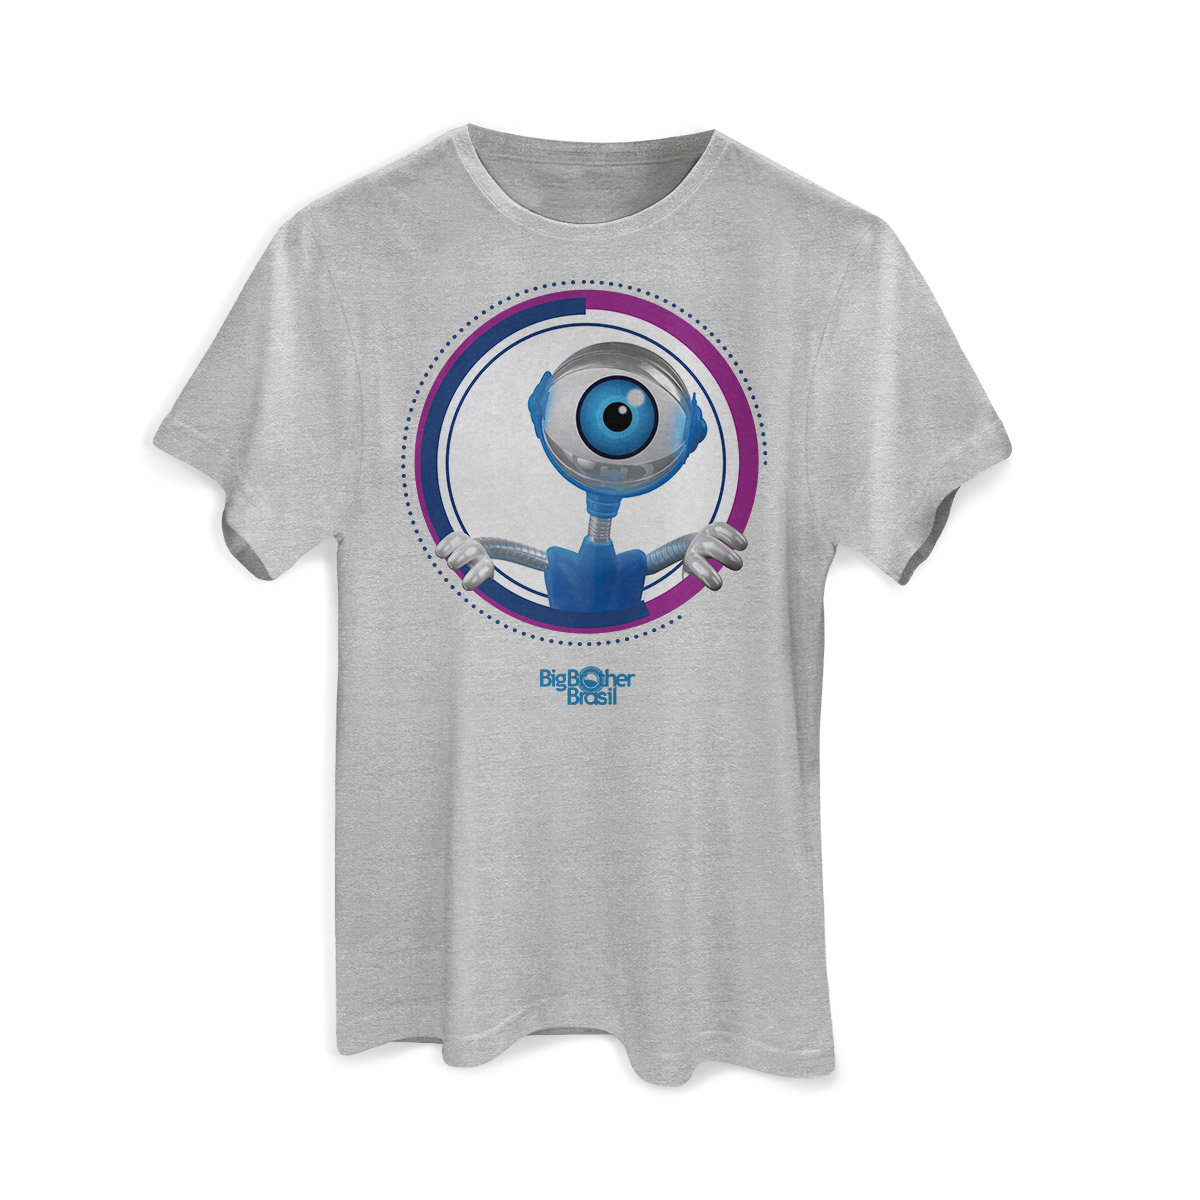 Camiseta Masculina Big Brother Brasil 15 Espiadinha do RoBBB